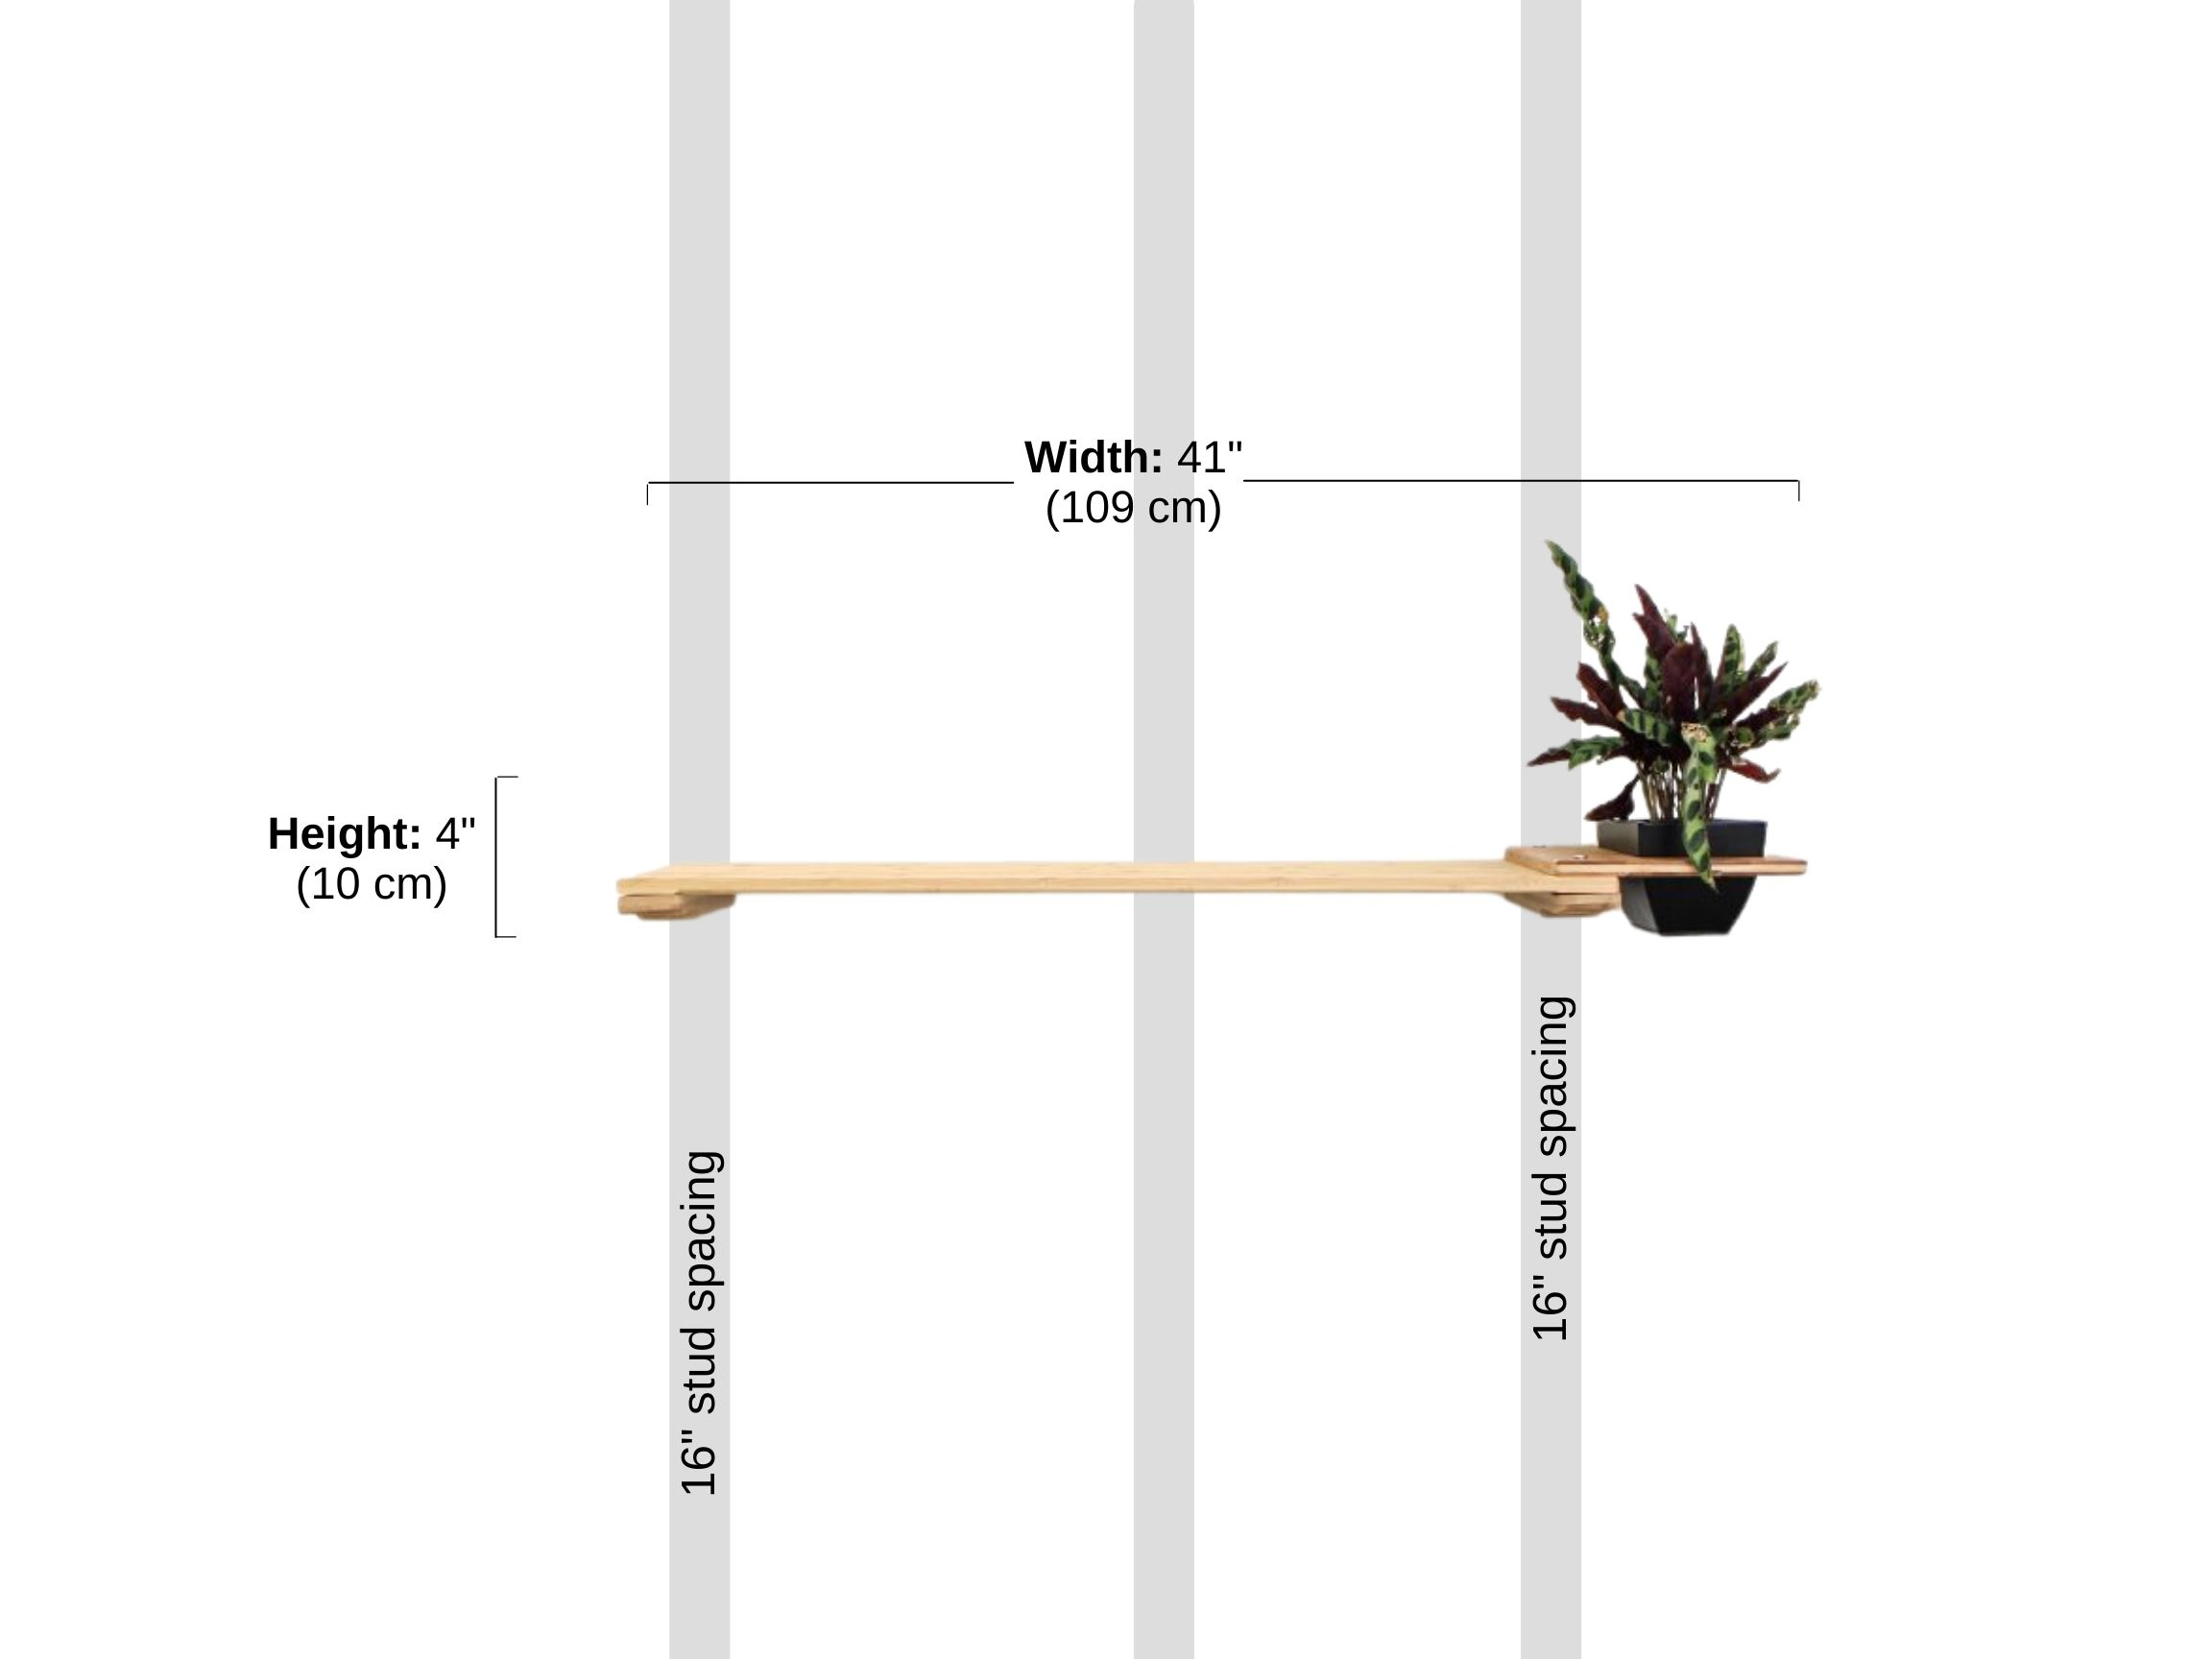 """Stud spacing and Dimensions of 34"""" Shelf with Planter"""